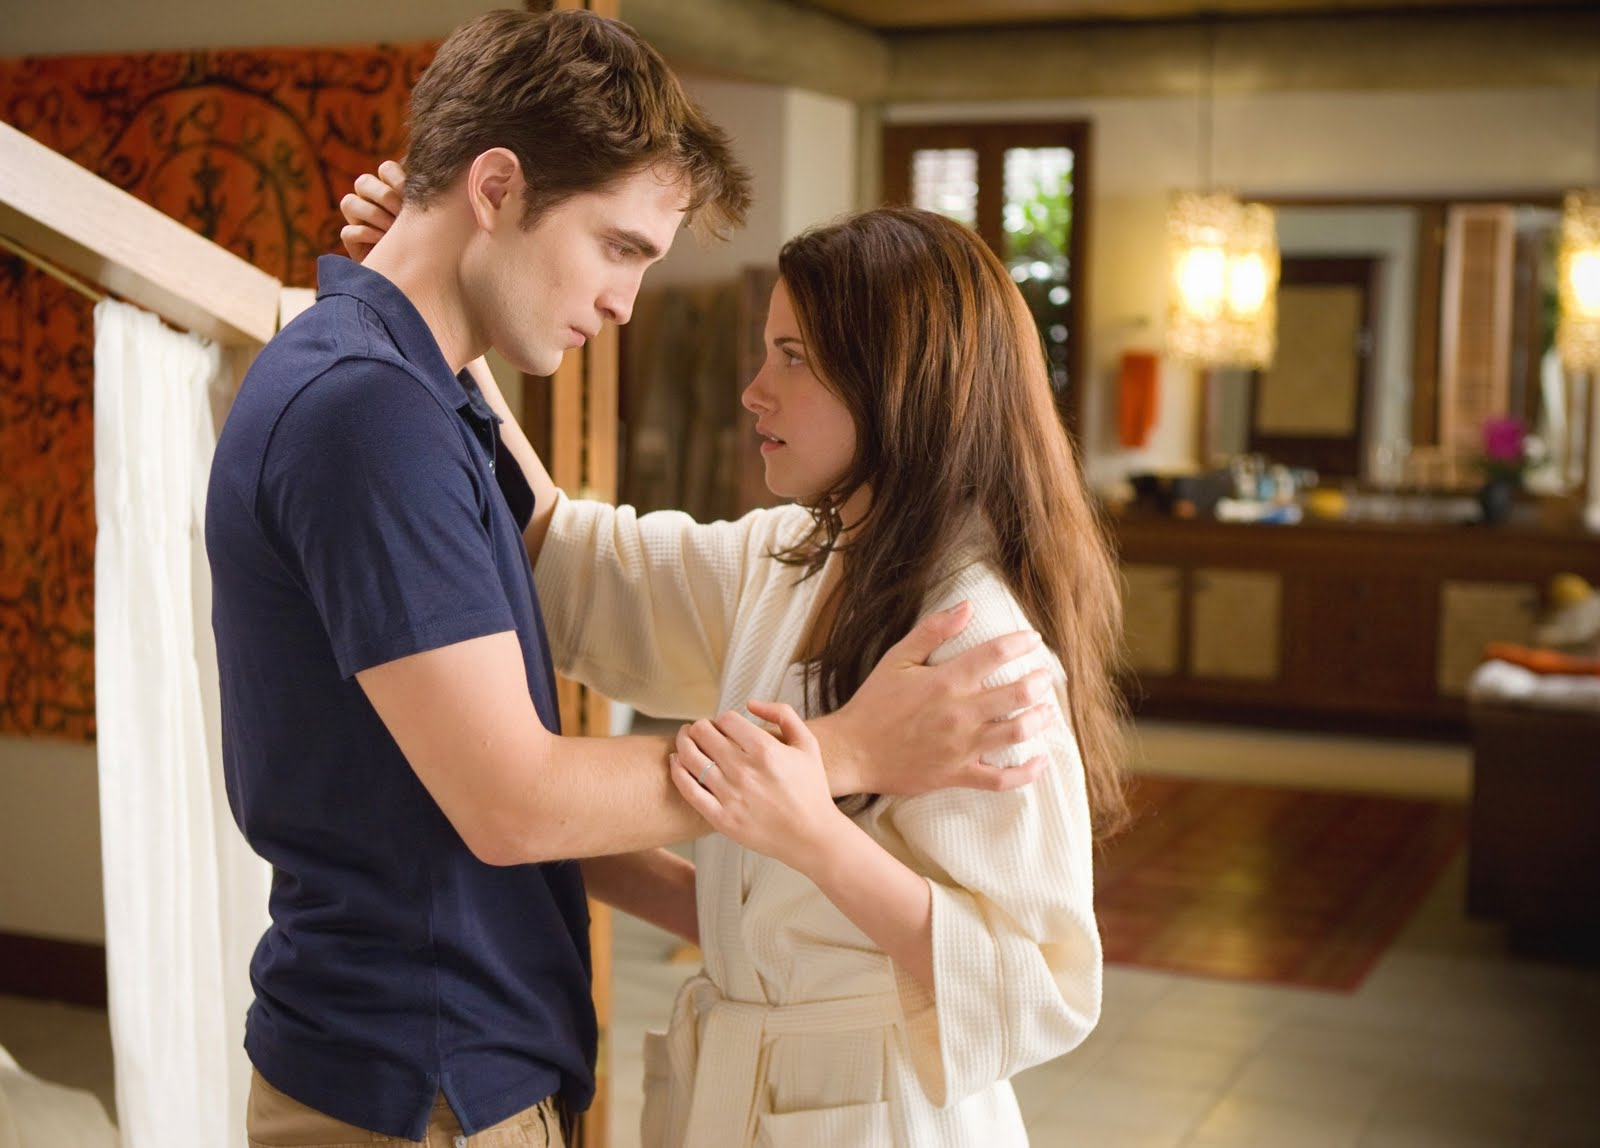 http://2.bp.blogspot.com/-ZYsLduqr1Z4/TmtyghKk2WI/AAAAAAAAAhI/0SpkmLWENwo/s1600/twilight-breaking-dawn-robert-pattinson-and-kristen-stewart.jpg